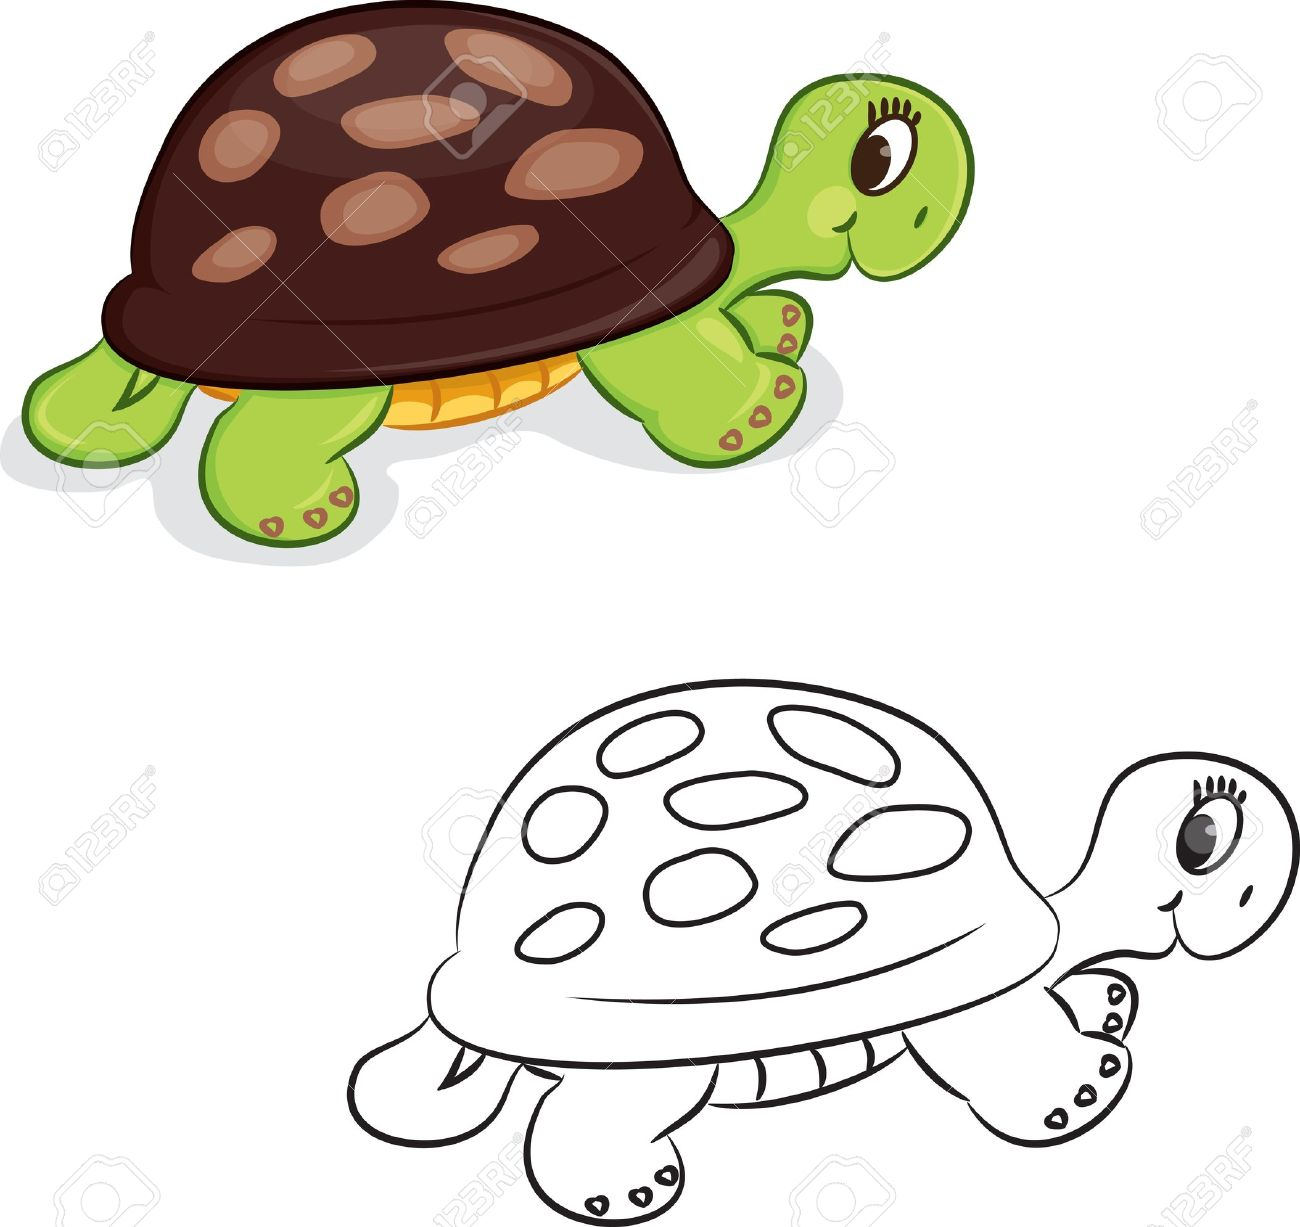 Cartoon Turtle Coloring Book Illustration Royalty Free Cliparts